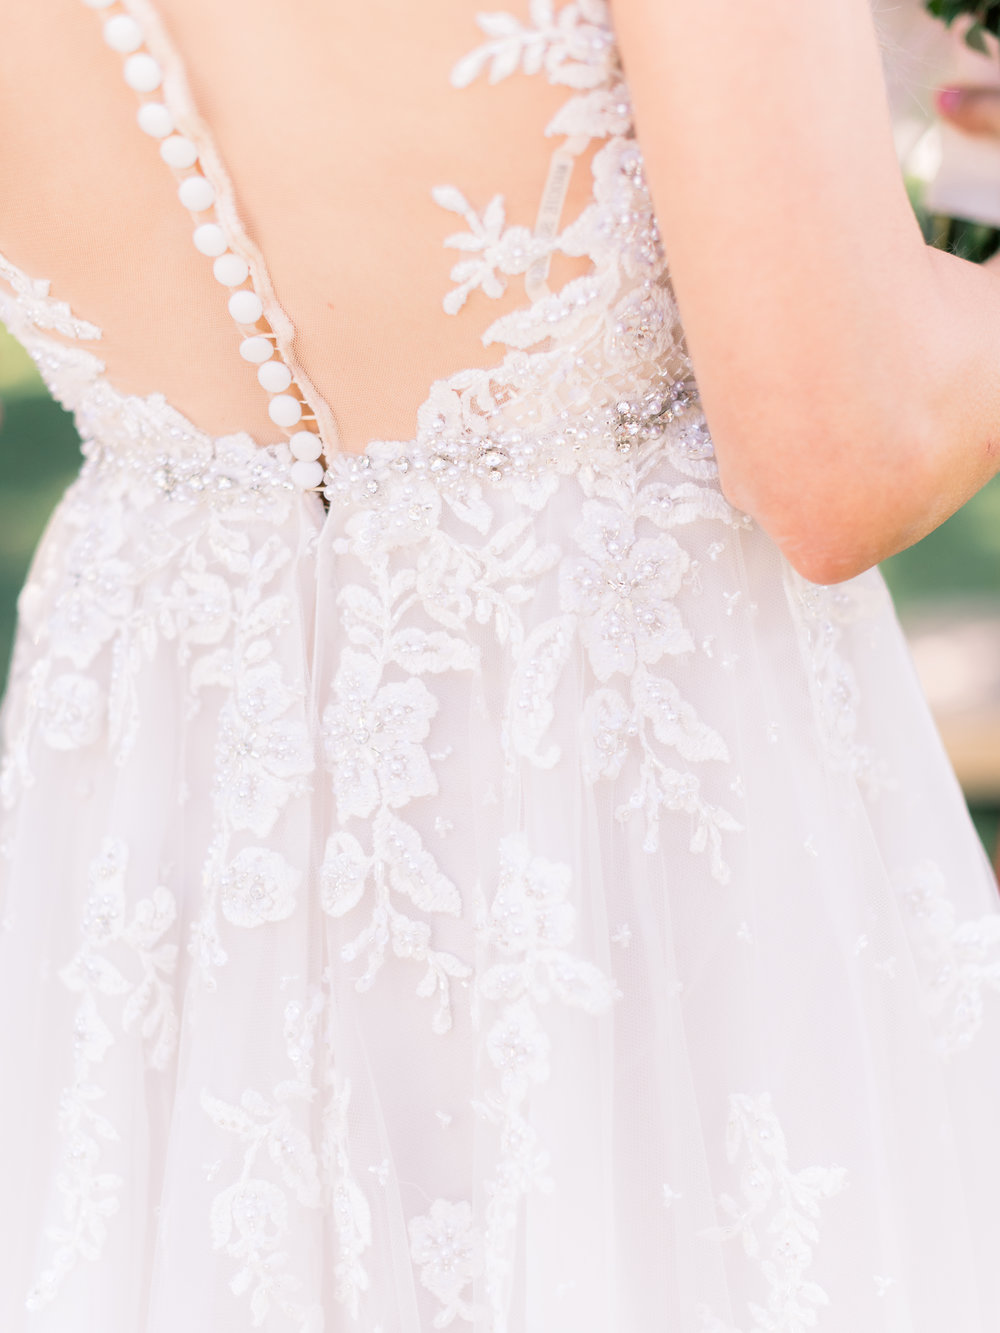 the-bride's-lace-wedding-gown.jpg